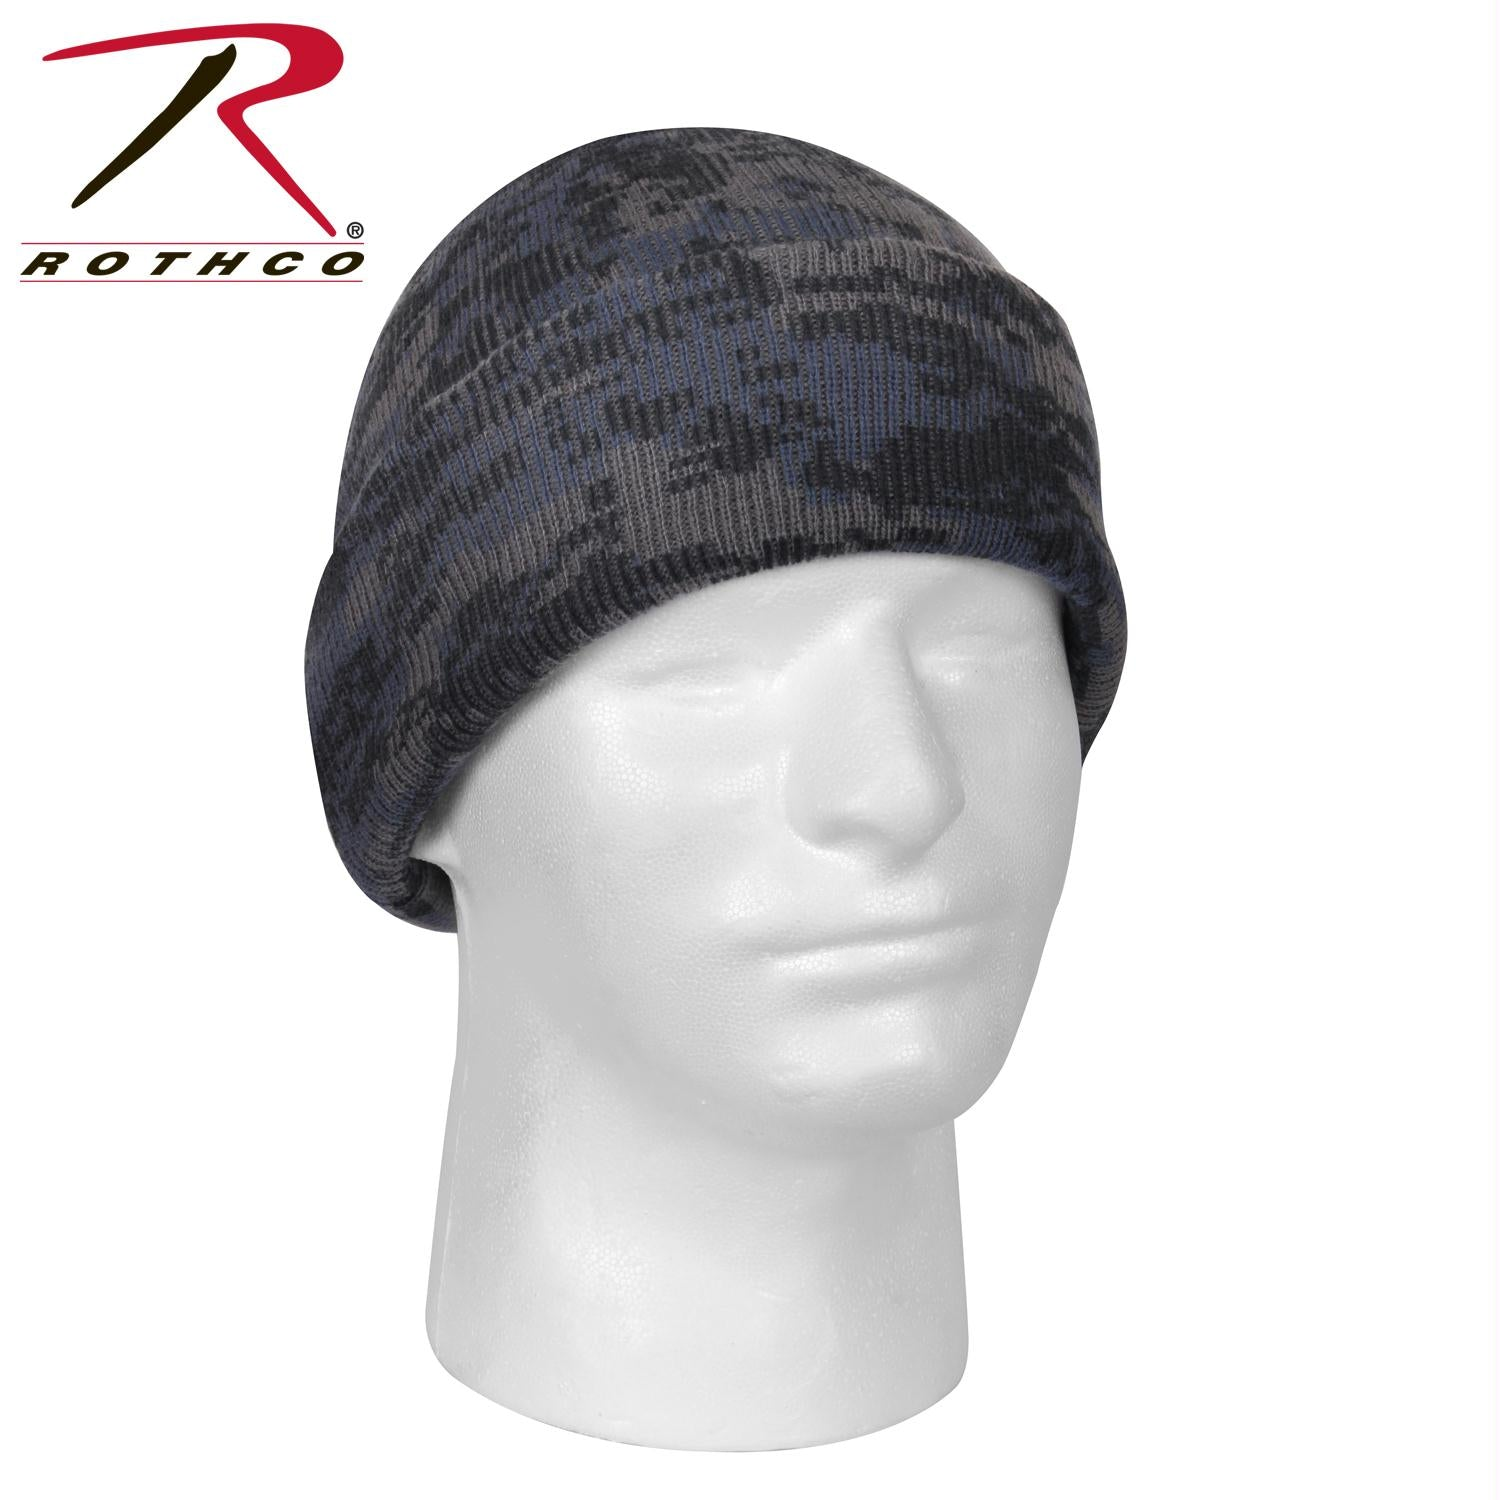 Rothco Deluxe Camo Watch Cap - Midnight Digital Camo